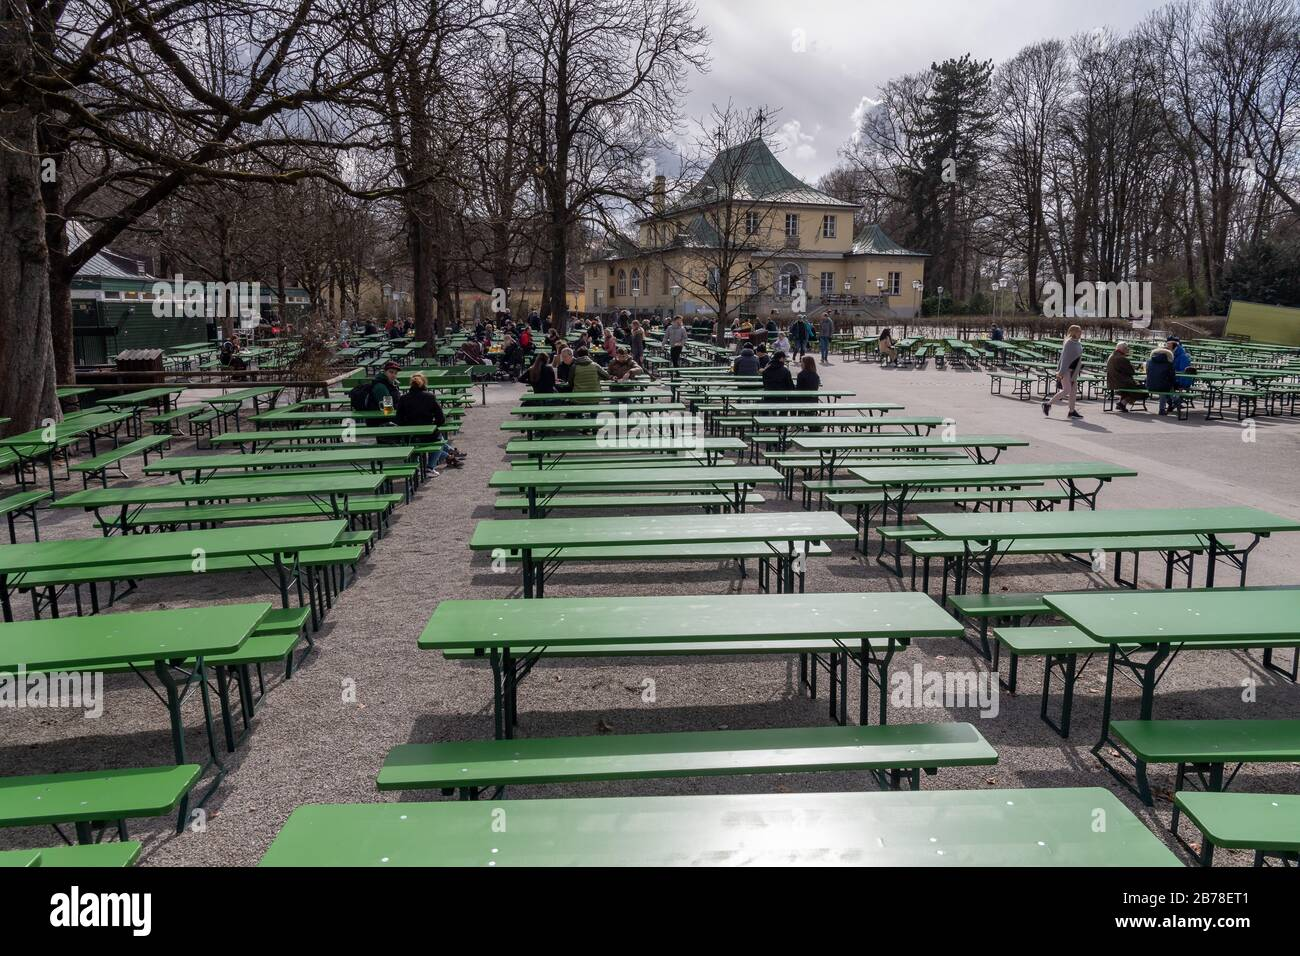 Munich, Germany. 14th Mar, 2020. There are still many free beer benches in the beer garden at the Chinese Tower in the English Garden. Credit: Peter Kneffel/dpa/Alamy Live News Stock Photo